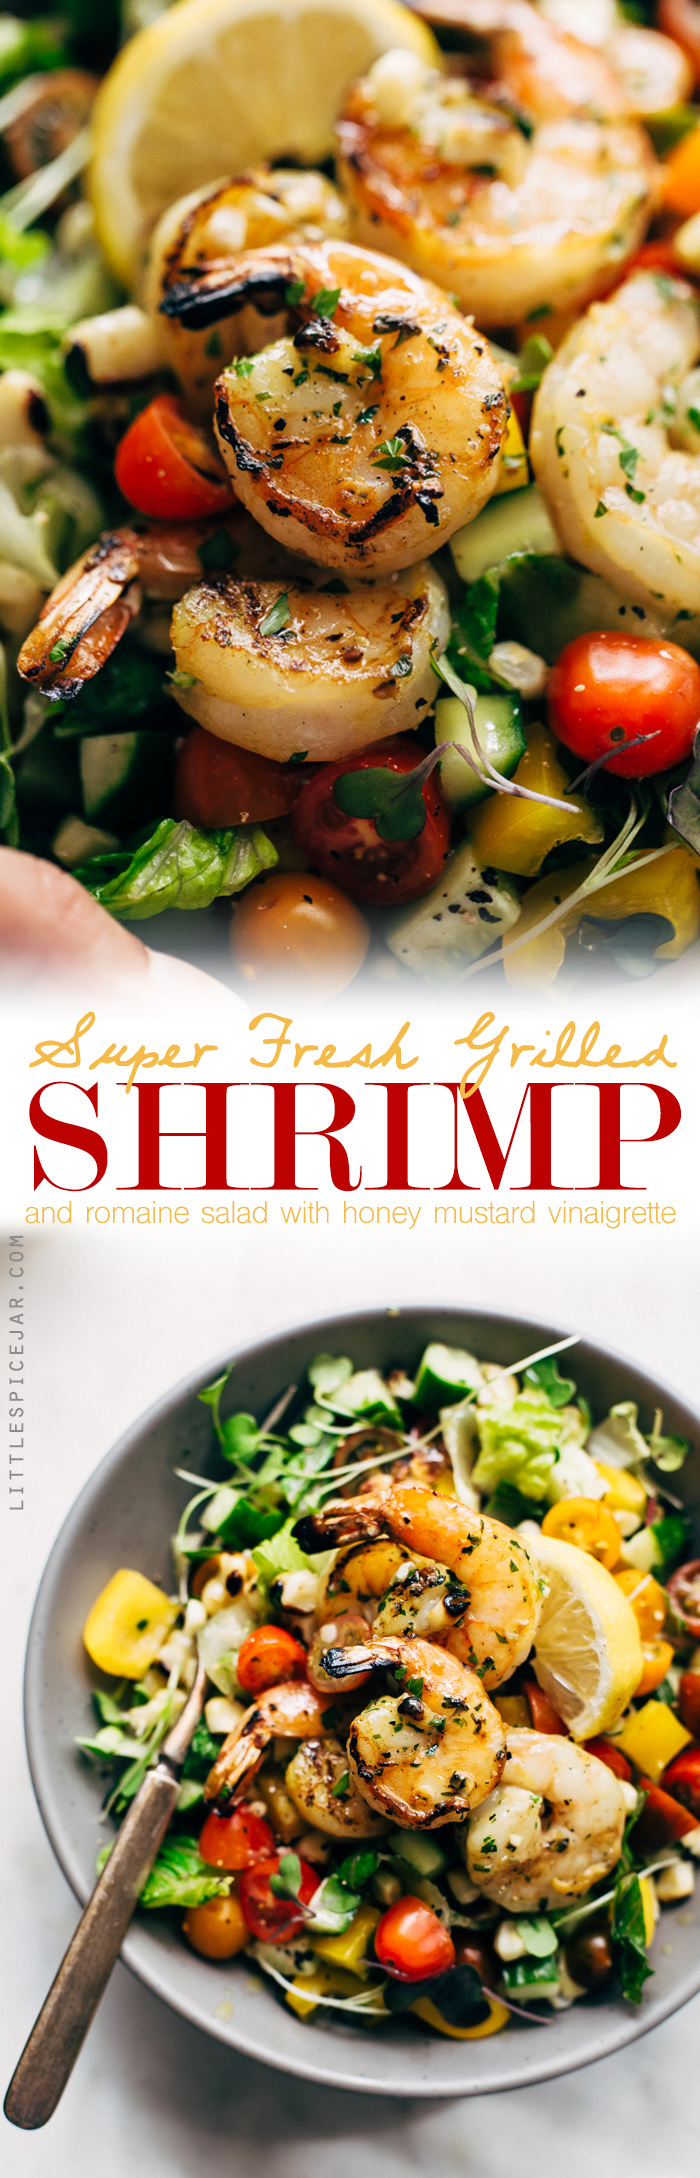 Super Fresh Grilled Shrimp Salad with Honey Mustard Vinaigrette - a simple salad with grilled romaine, shrimp, corn, and peppers. Top if off with the honey mustard dressing! #shrimpsalad #grilledromaine #grilledshrimp #salad | Littlespicejar.com